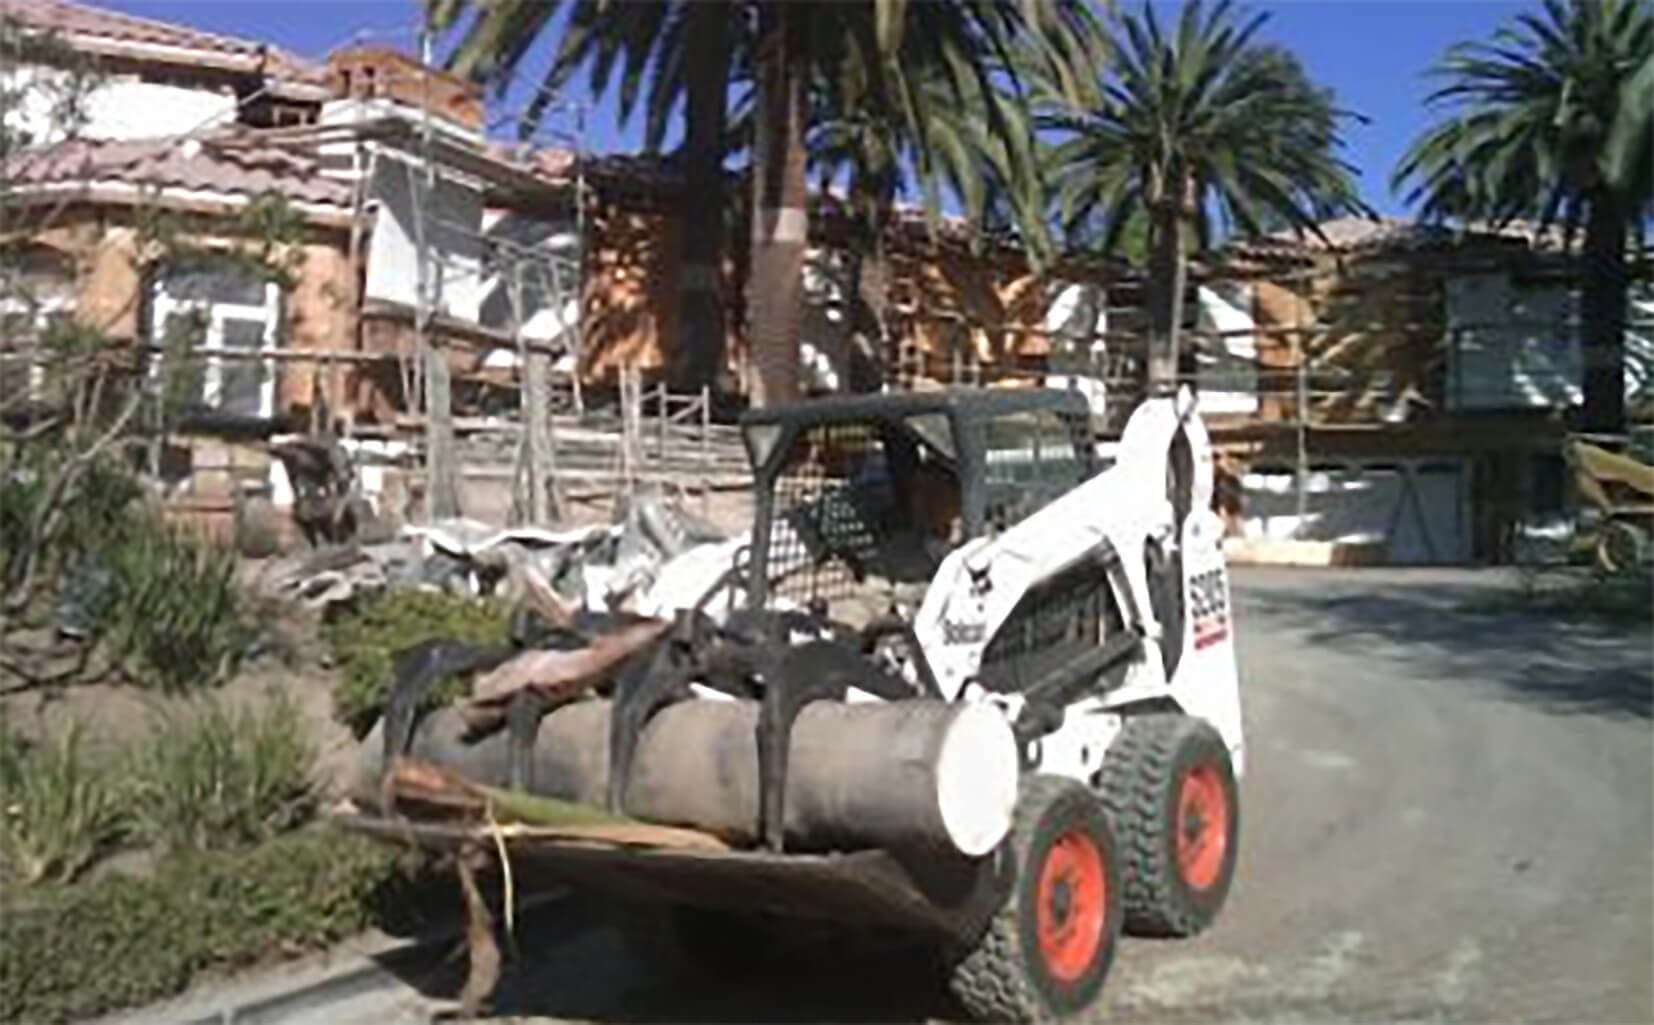 Palm Tree Removal-Lantana Tree Trimming and Tree Removal Services-We Offer Tree Trimming Services, Tree Removal, Tree Pruning, Tree Cutting, Residential and Commercial Tree Trimming Services, Storm Damage, Emergency Tree Removal, Land Clearing, Tree Companies, Tree Care Service, Stump Grinding, and we're the Best Tree Trimming Company Near You Guaranteed!